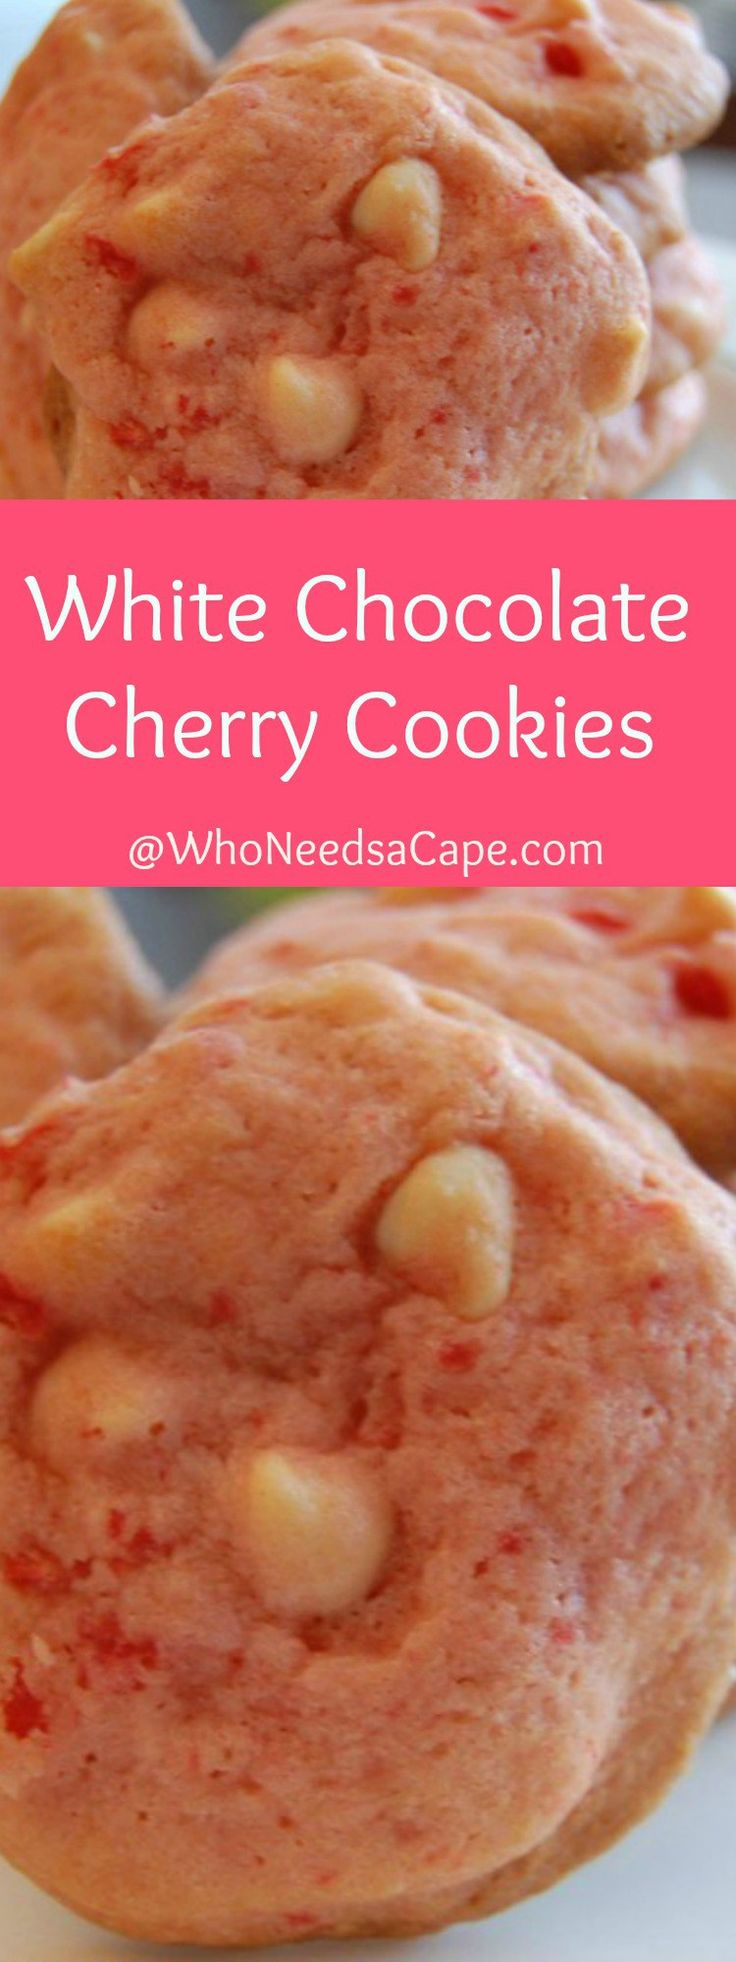 White Chocolate Cherry Cookies are the perfect sweet dessert treat for Valentine's Day! With cherries and white chocolate this is one tasty cookie.